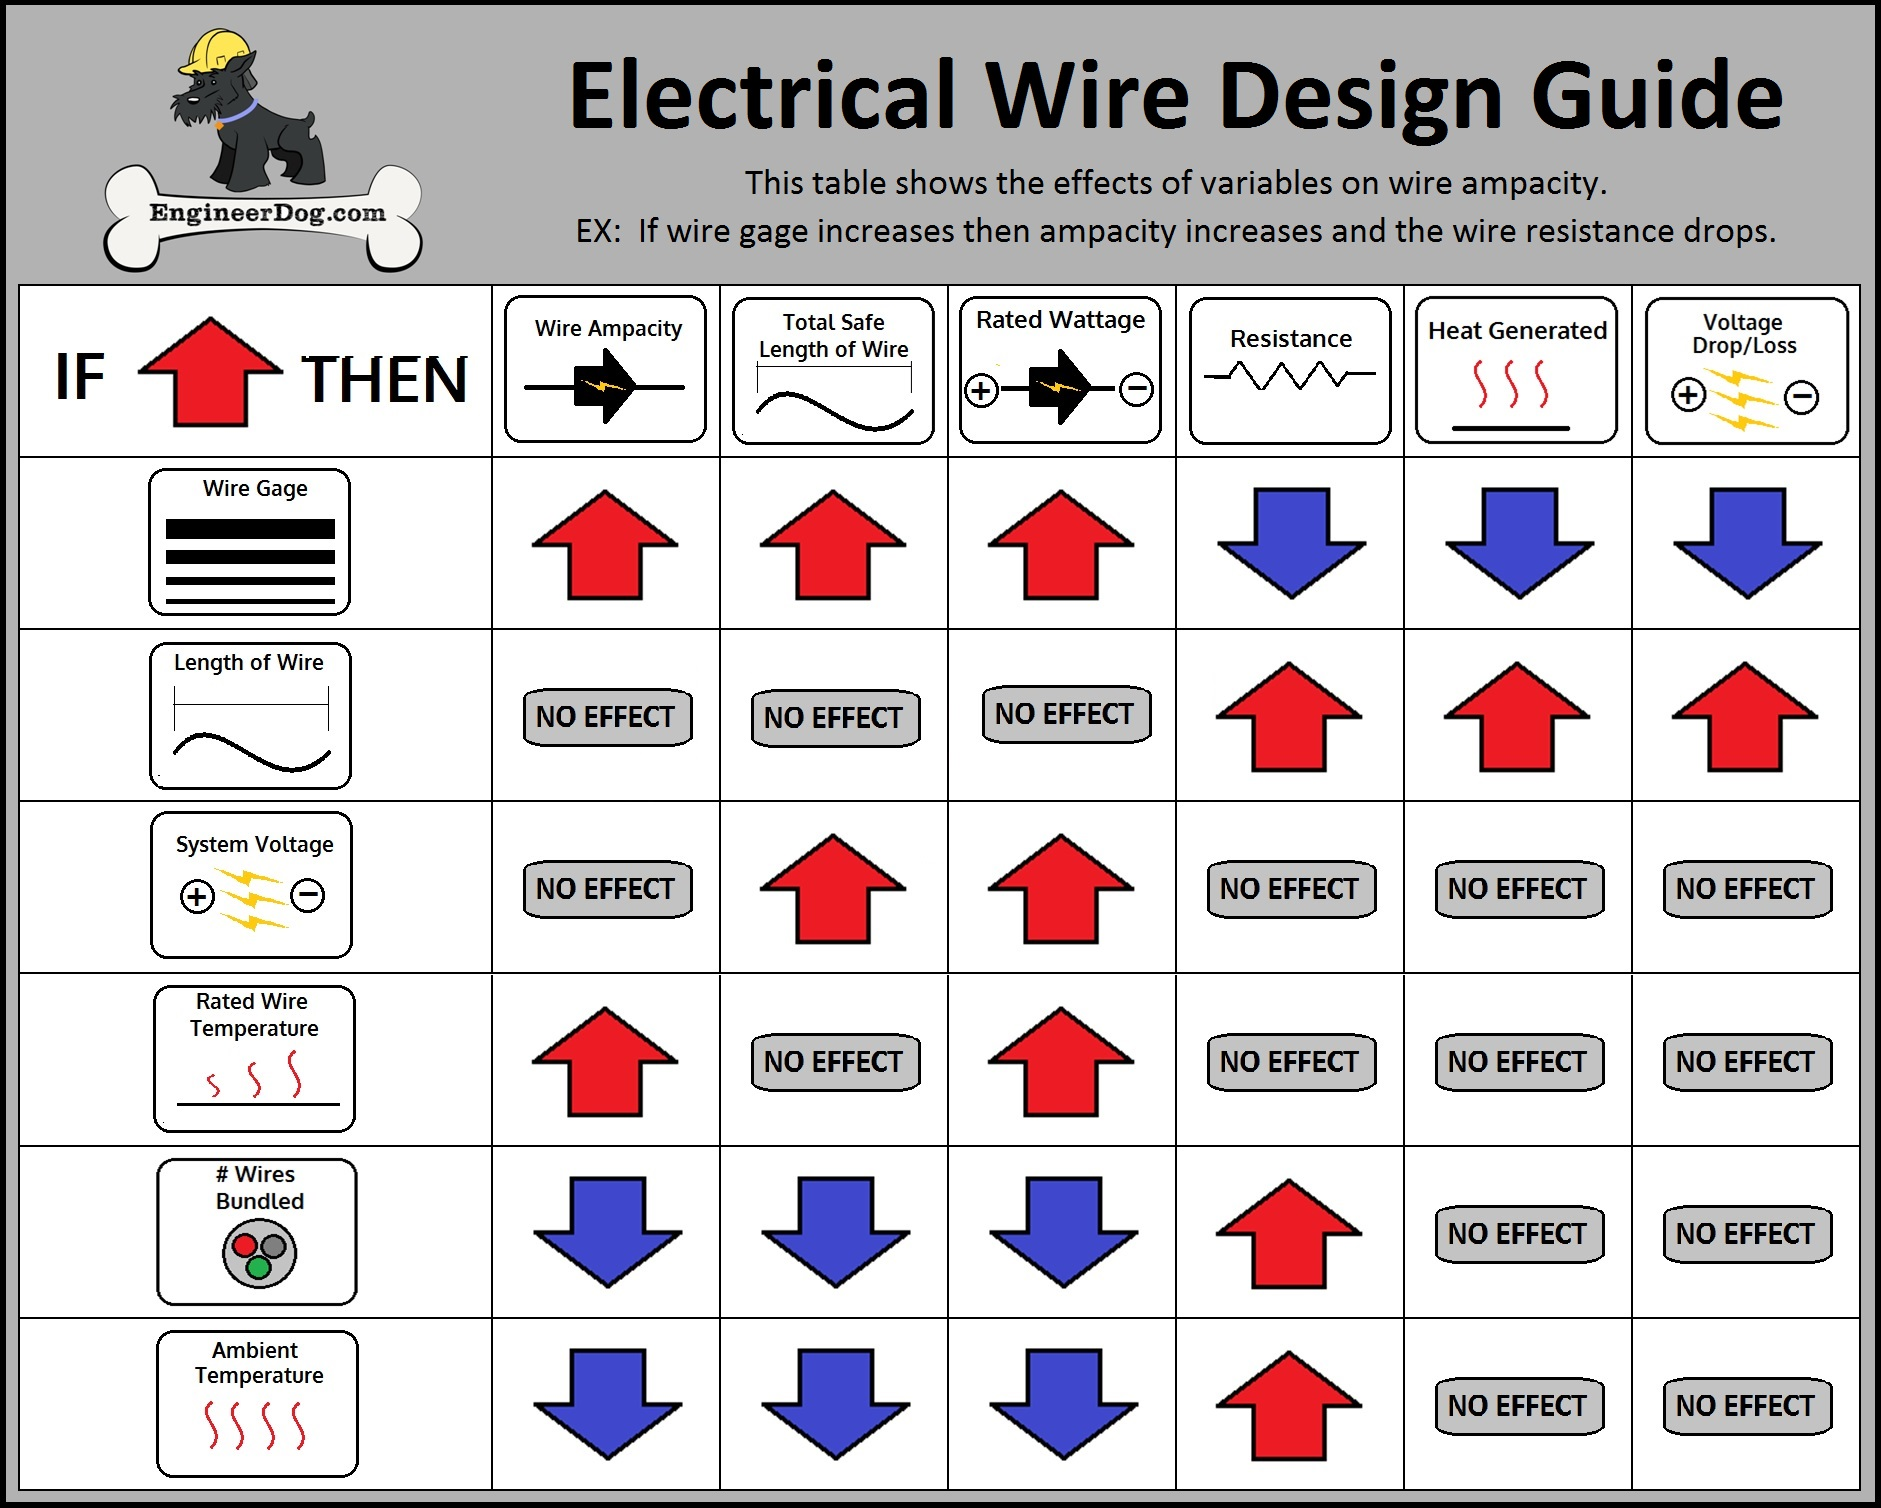 Wiring gauge guide wiring diagram for light switch free electrical wire gauge sizing calculator engineerdog rh engineerdog com vape wire gauge guide speaker wire keyboard keysfo